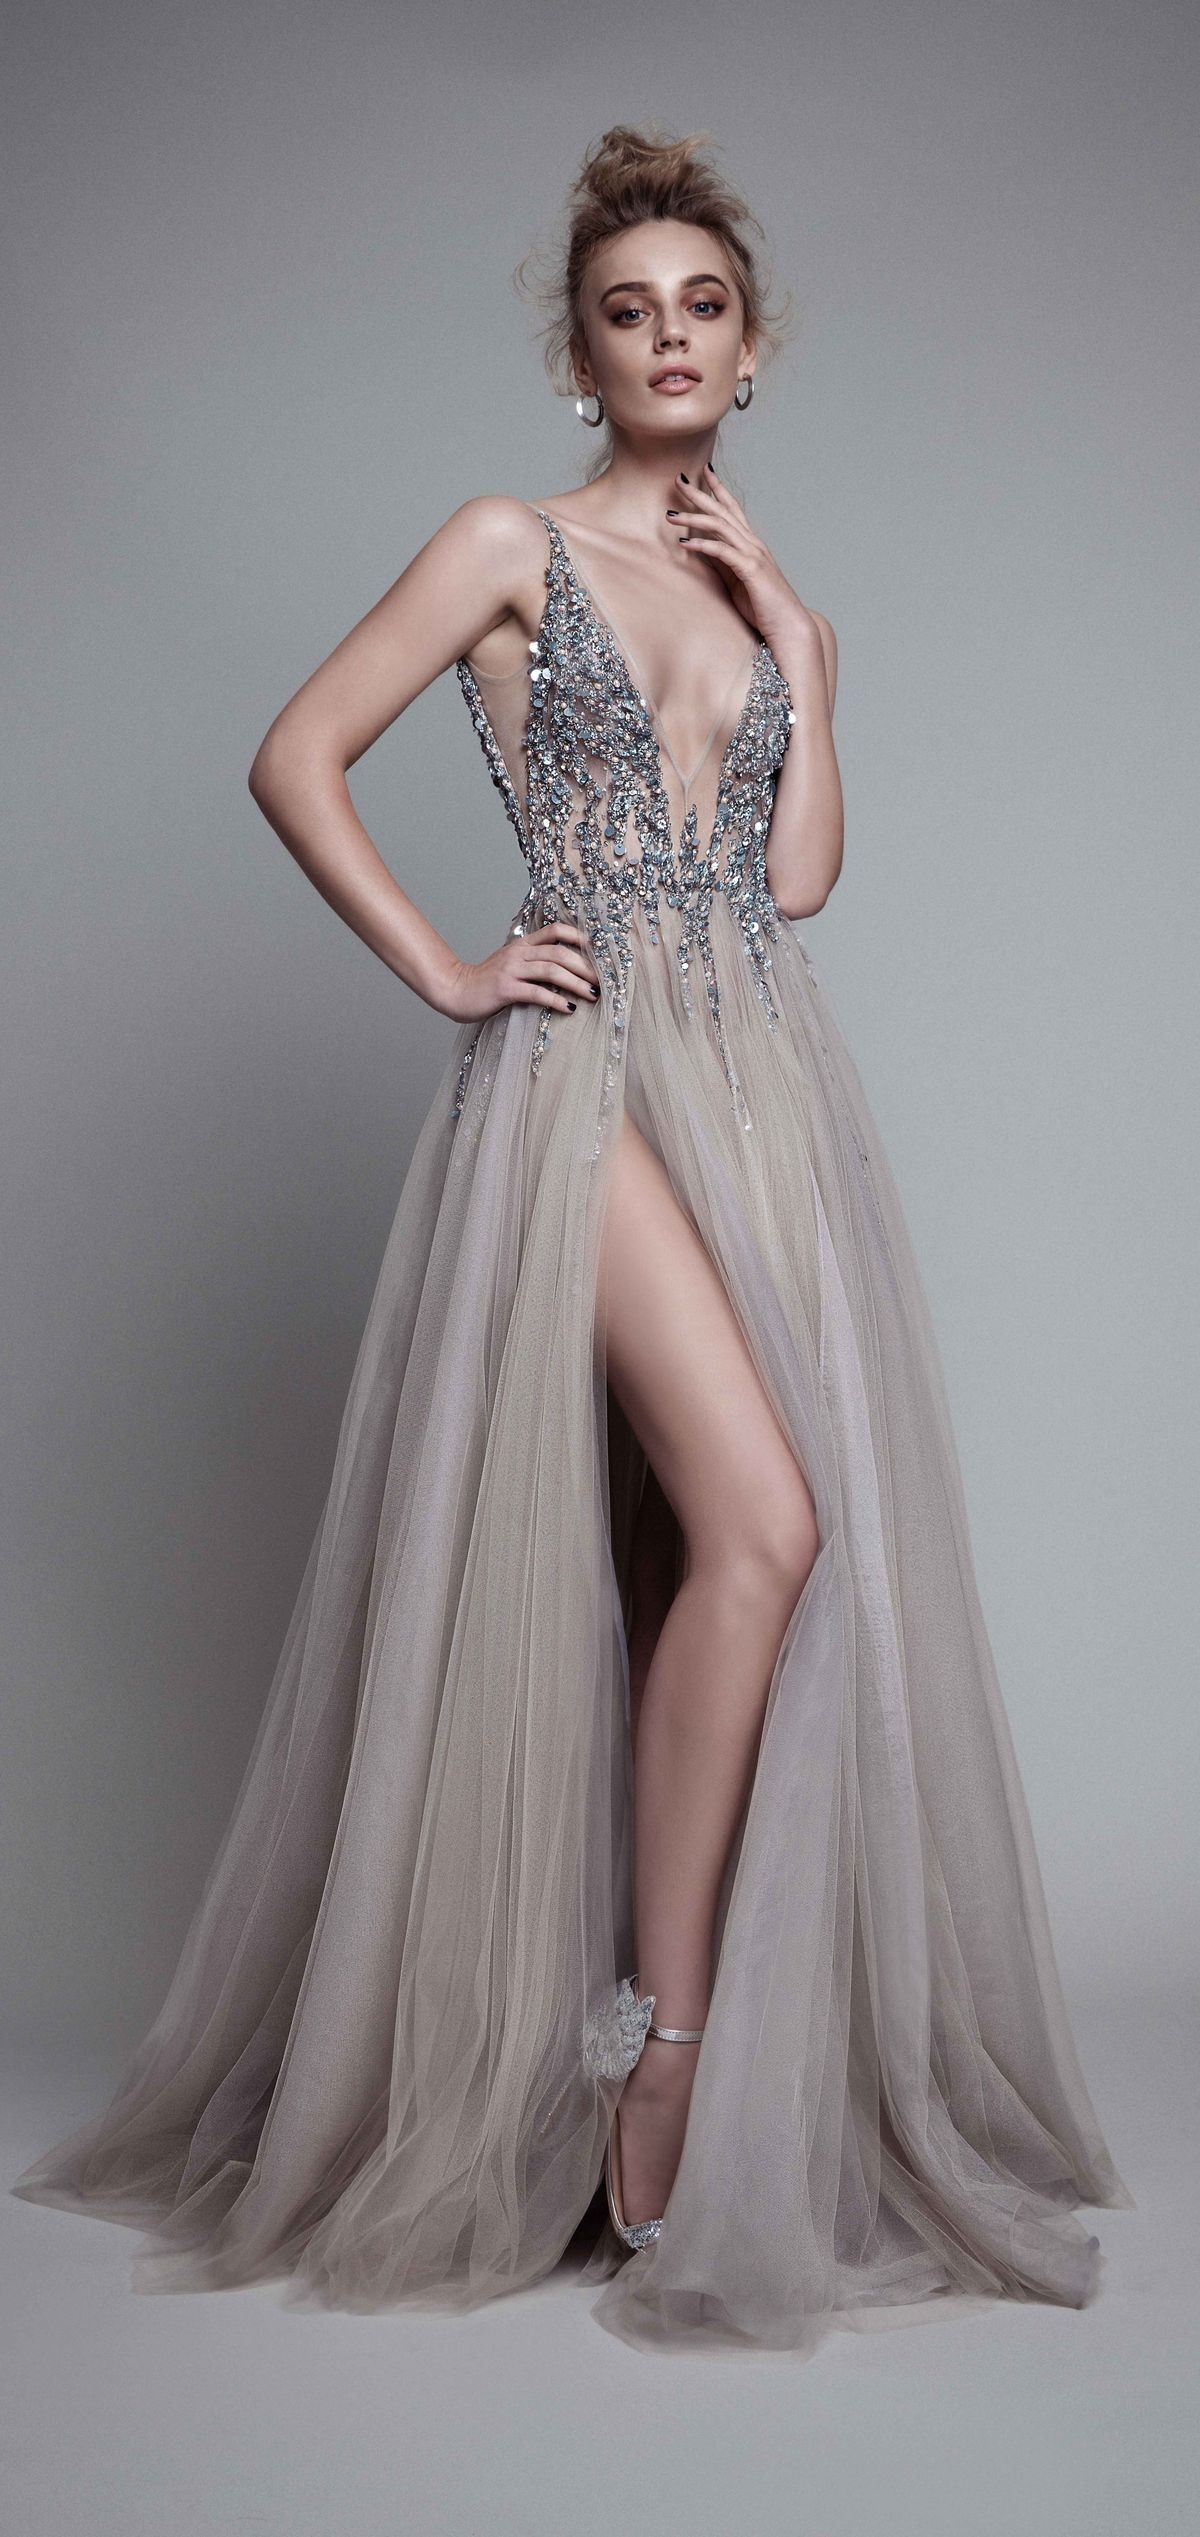 Dress for wedding evening party  Pin by Timray Padilla on DrEaM dReSsOuTfiT  Pinterest  Dream